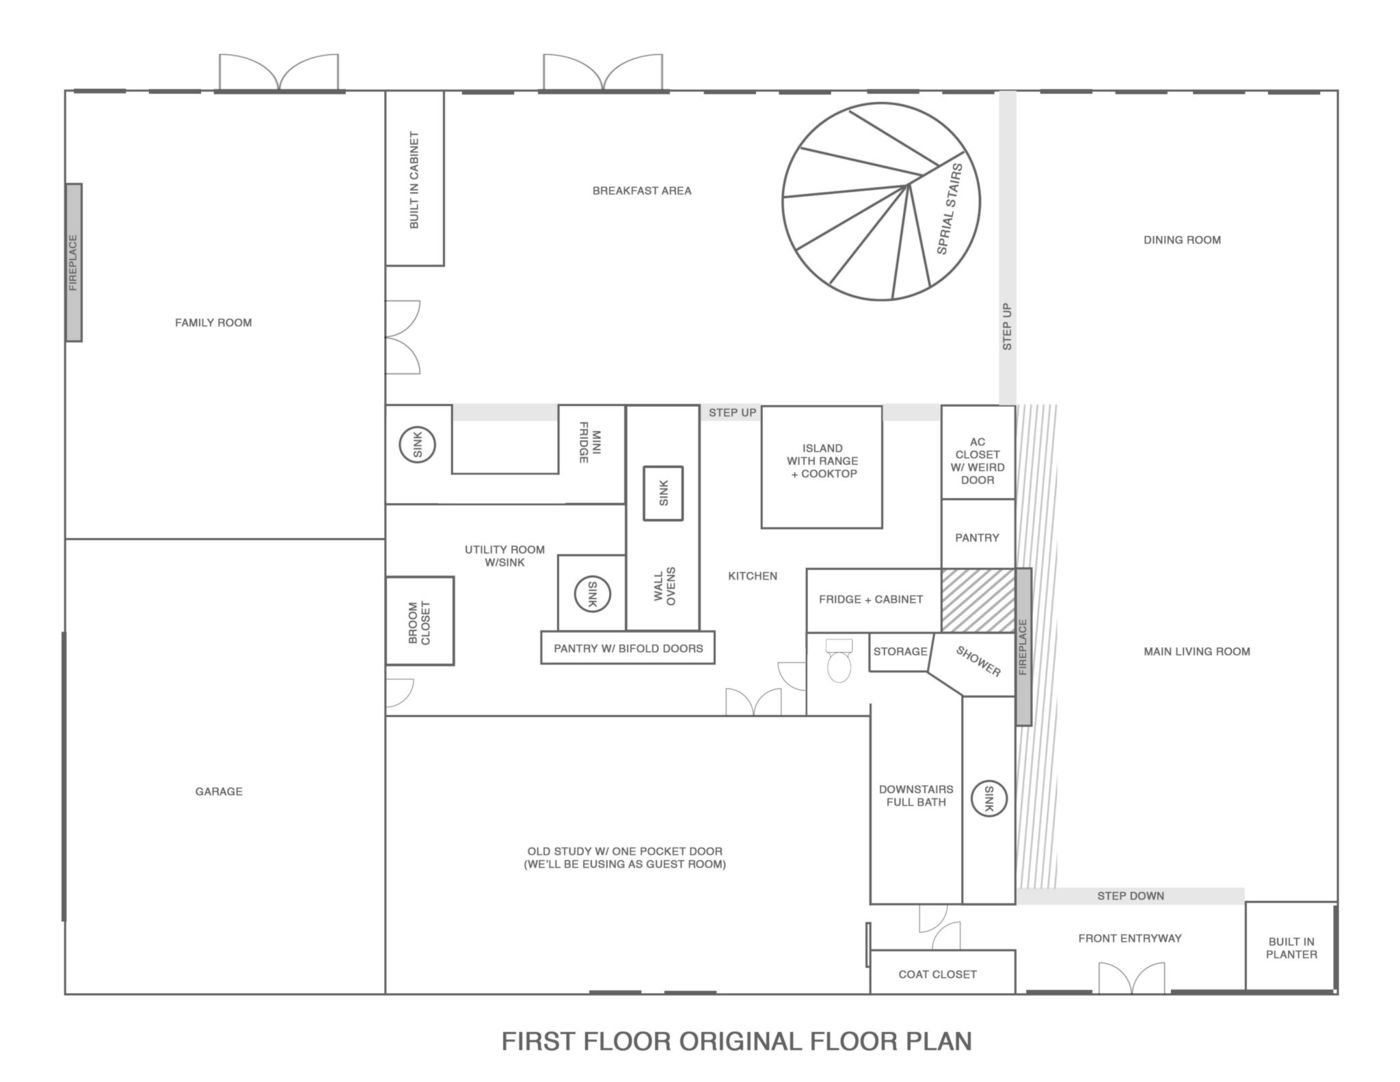 the original layout of our new house - Sugar & Cloth Casa: Renovation Update + Floor Plans for First Floor! by top Houston lifestyle blogger Ashley Rose of Sugar & Cloth #homedecor #interiors #design #interiordesign #floorplans #renovation #ideas